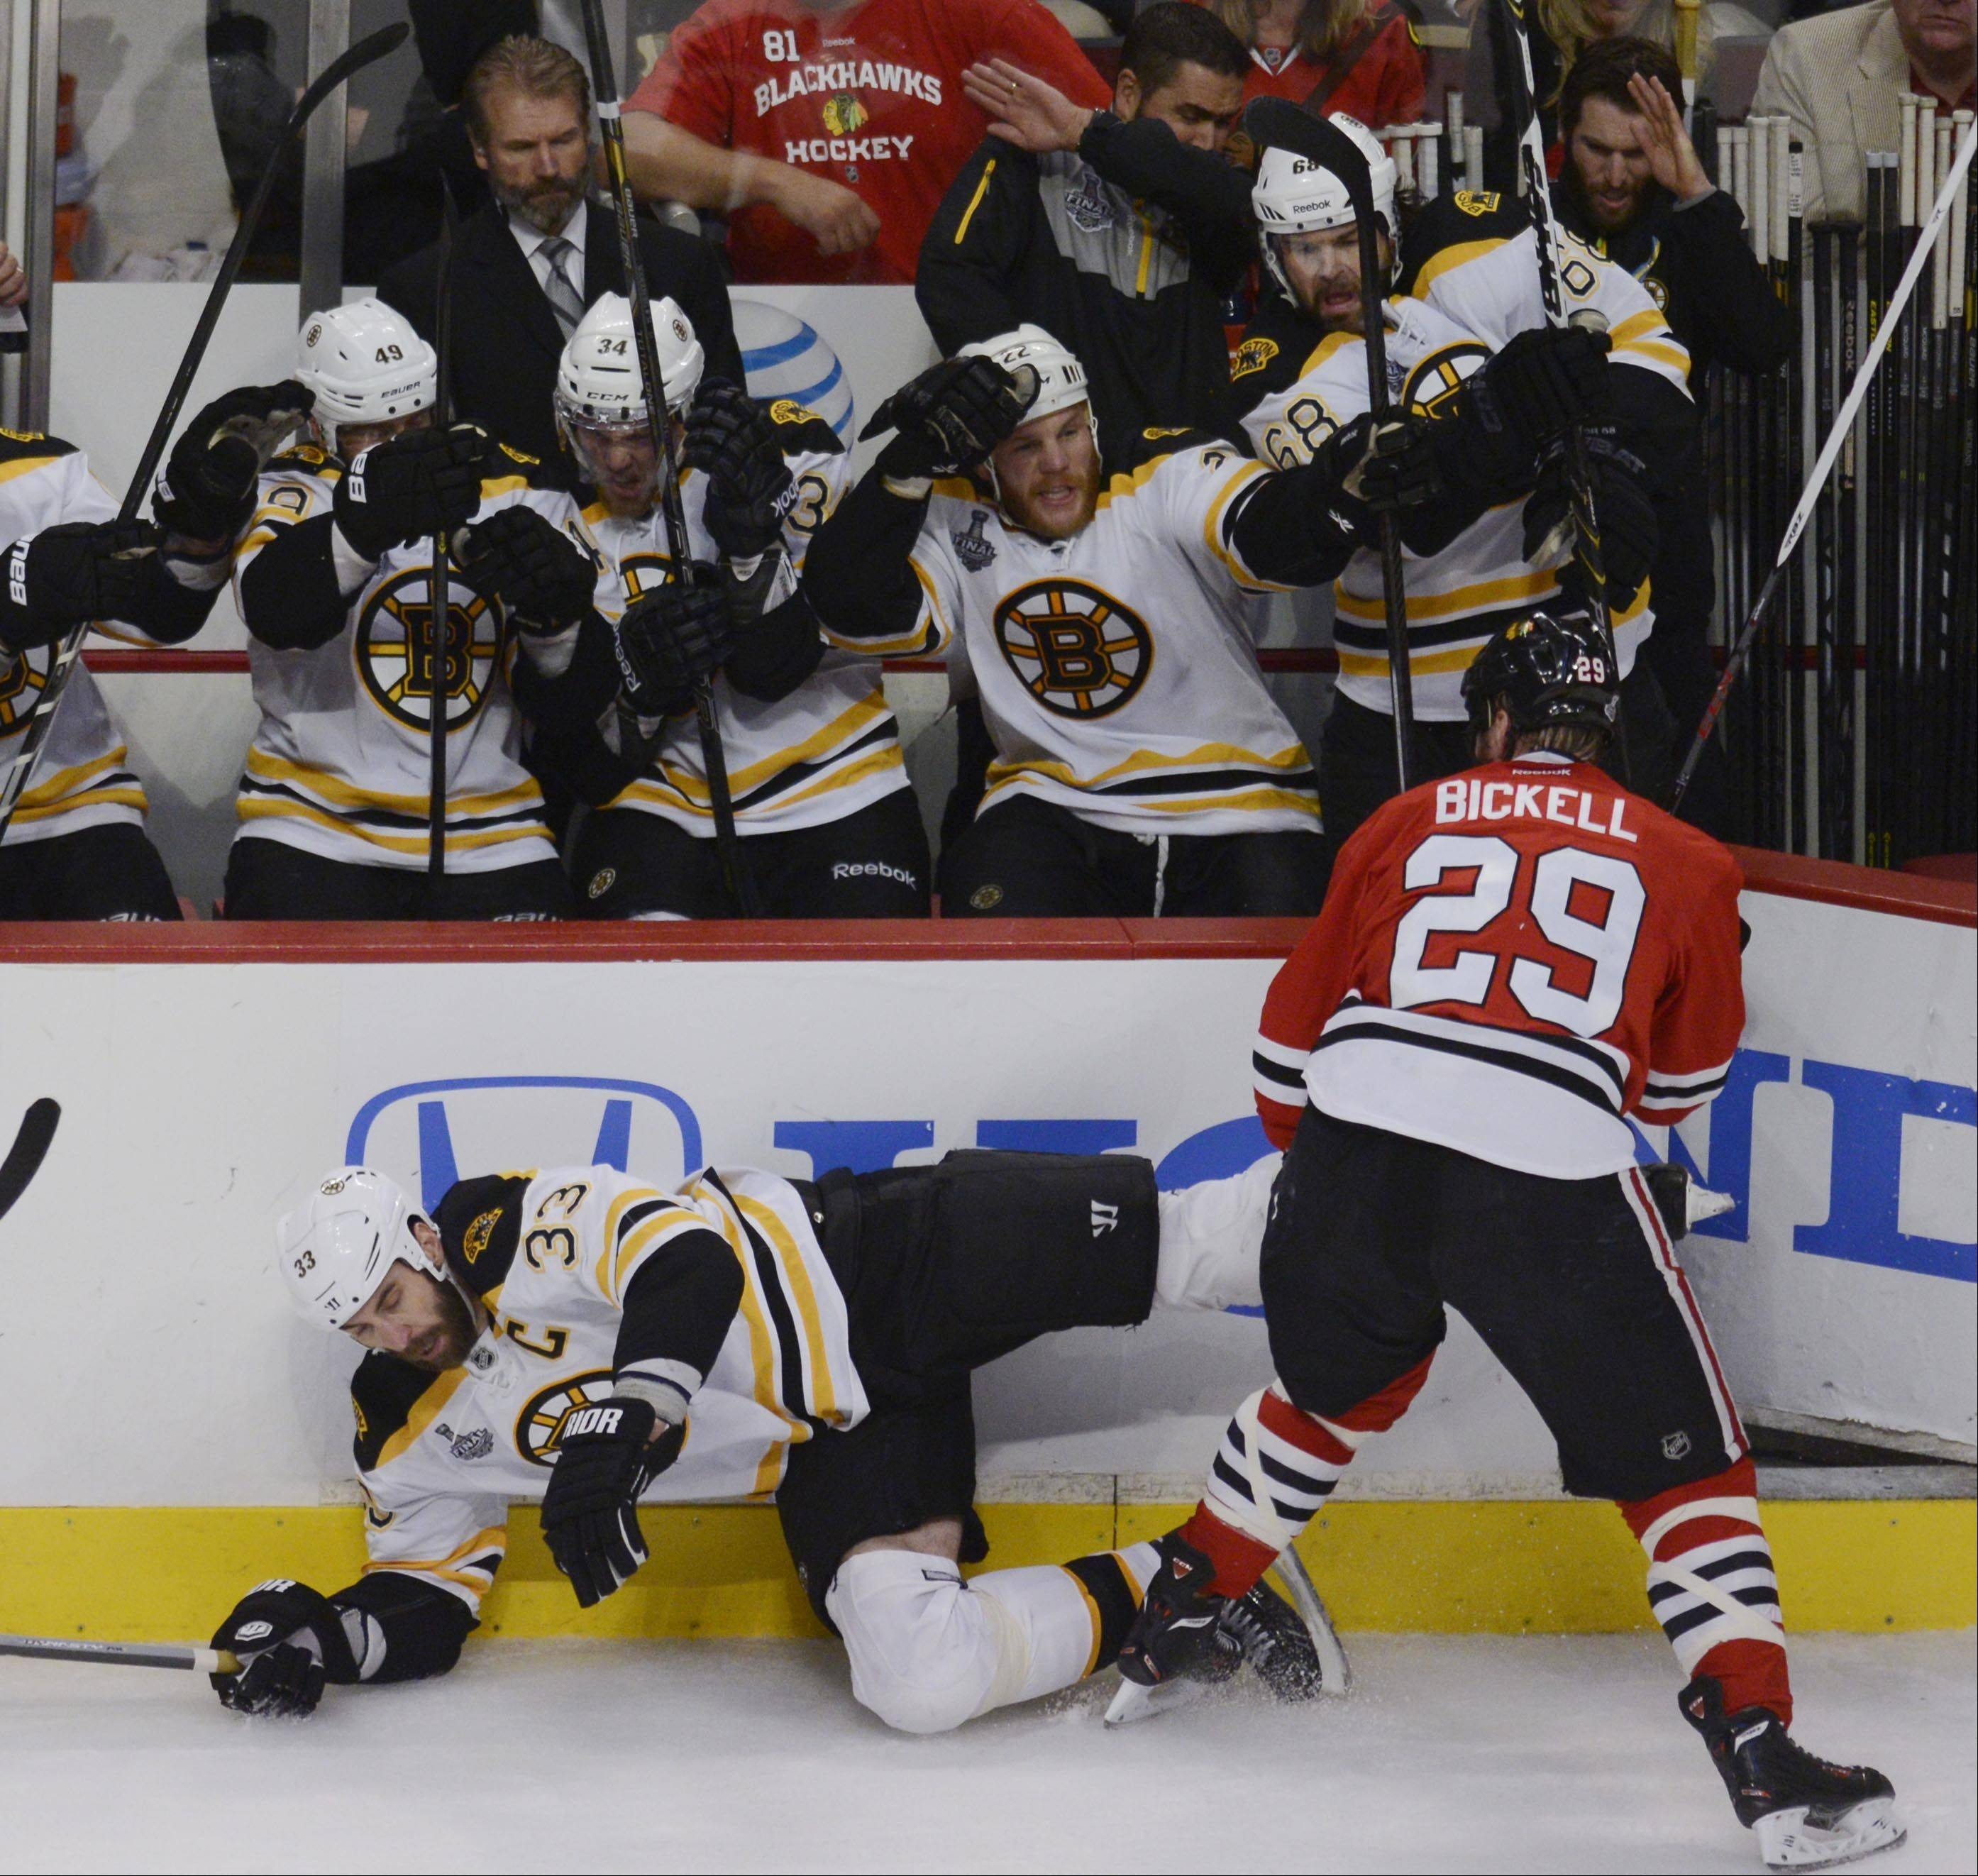 Chicago Blackhawks left wing Bryan Bickell checks Boston Bruins defenseman Zdeno Chara into the boards in front of the Boston bench in the first period Saturday in Game 5 of the Stanley Cup Finals at the United Center in Chicago.